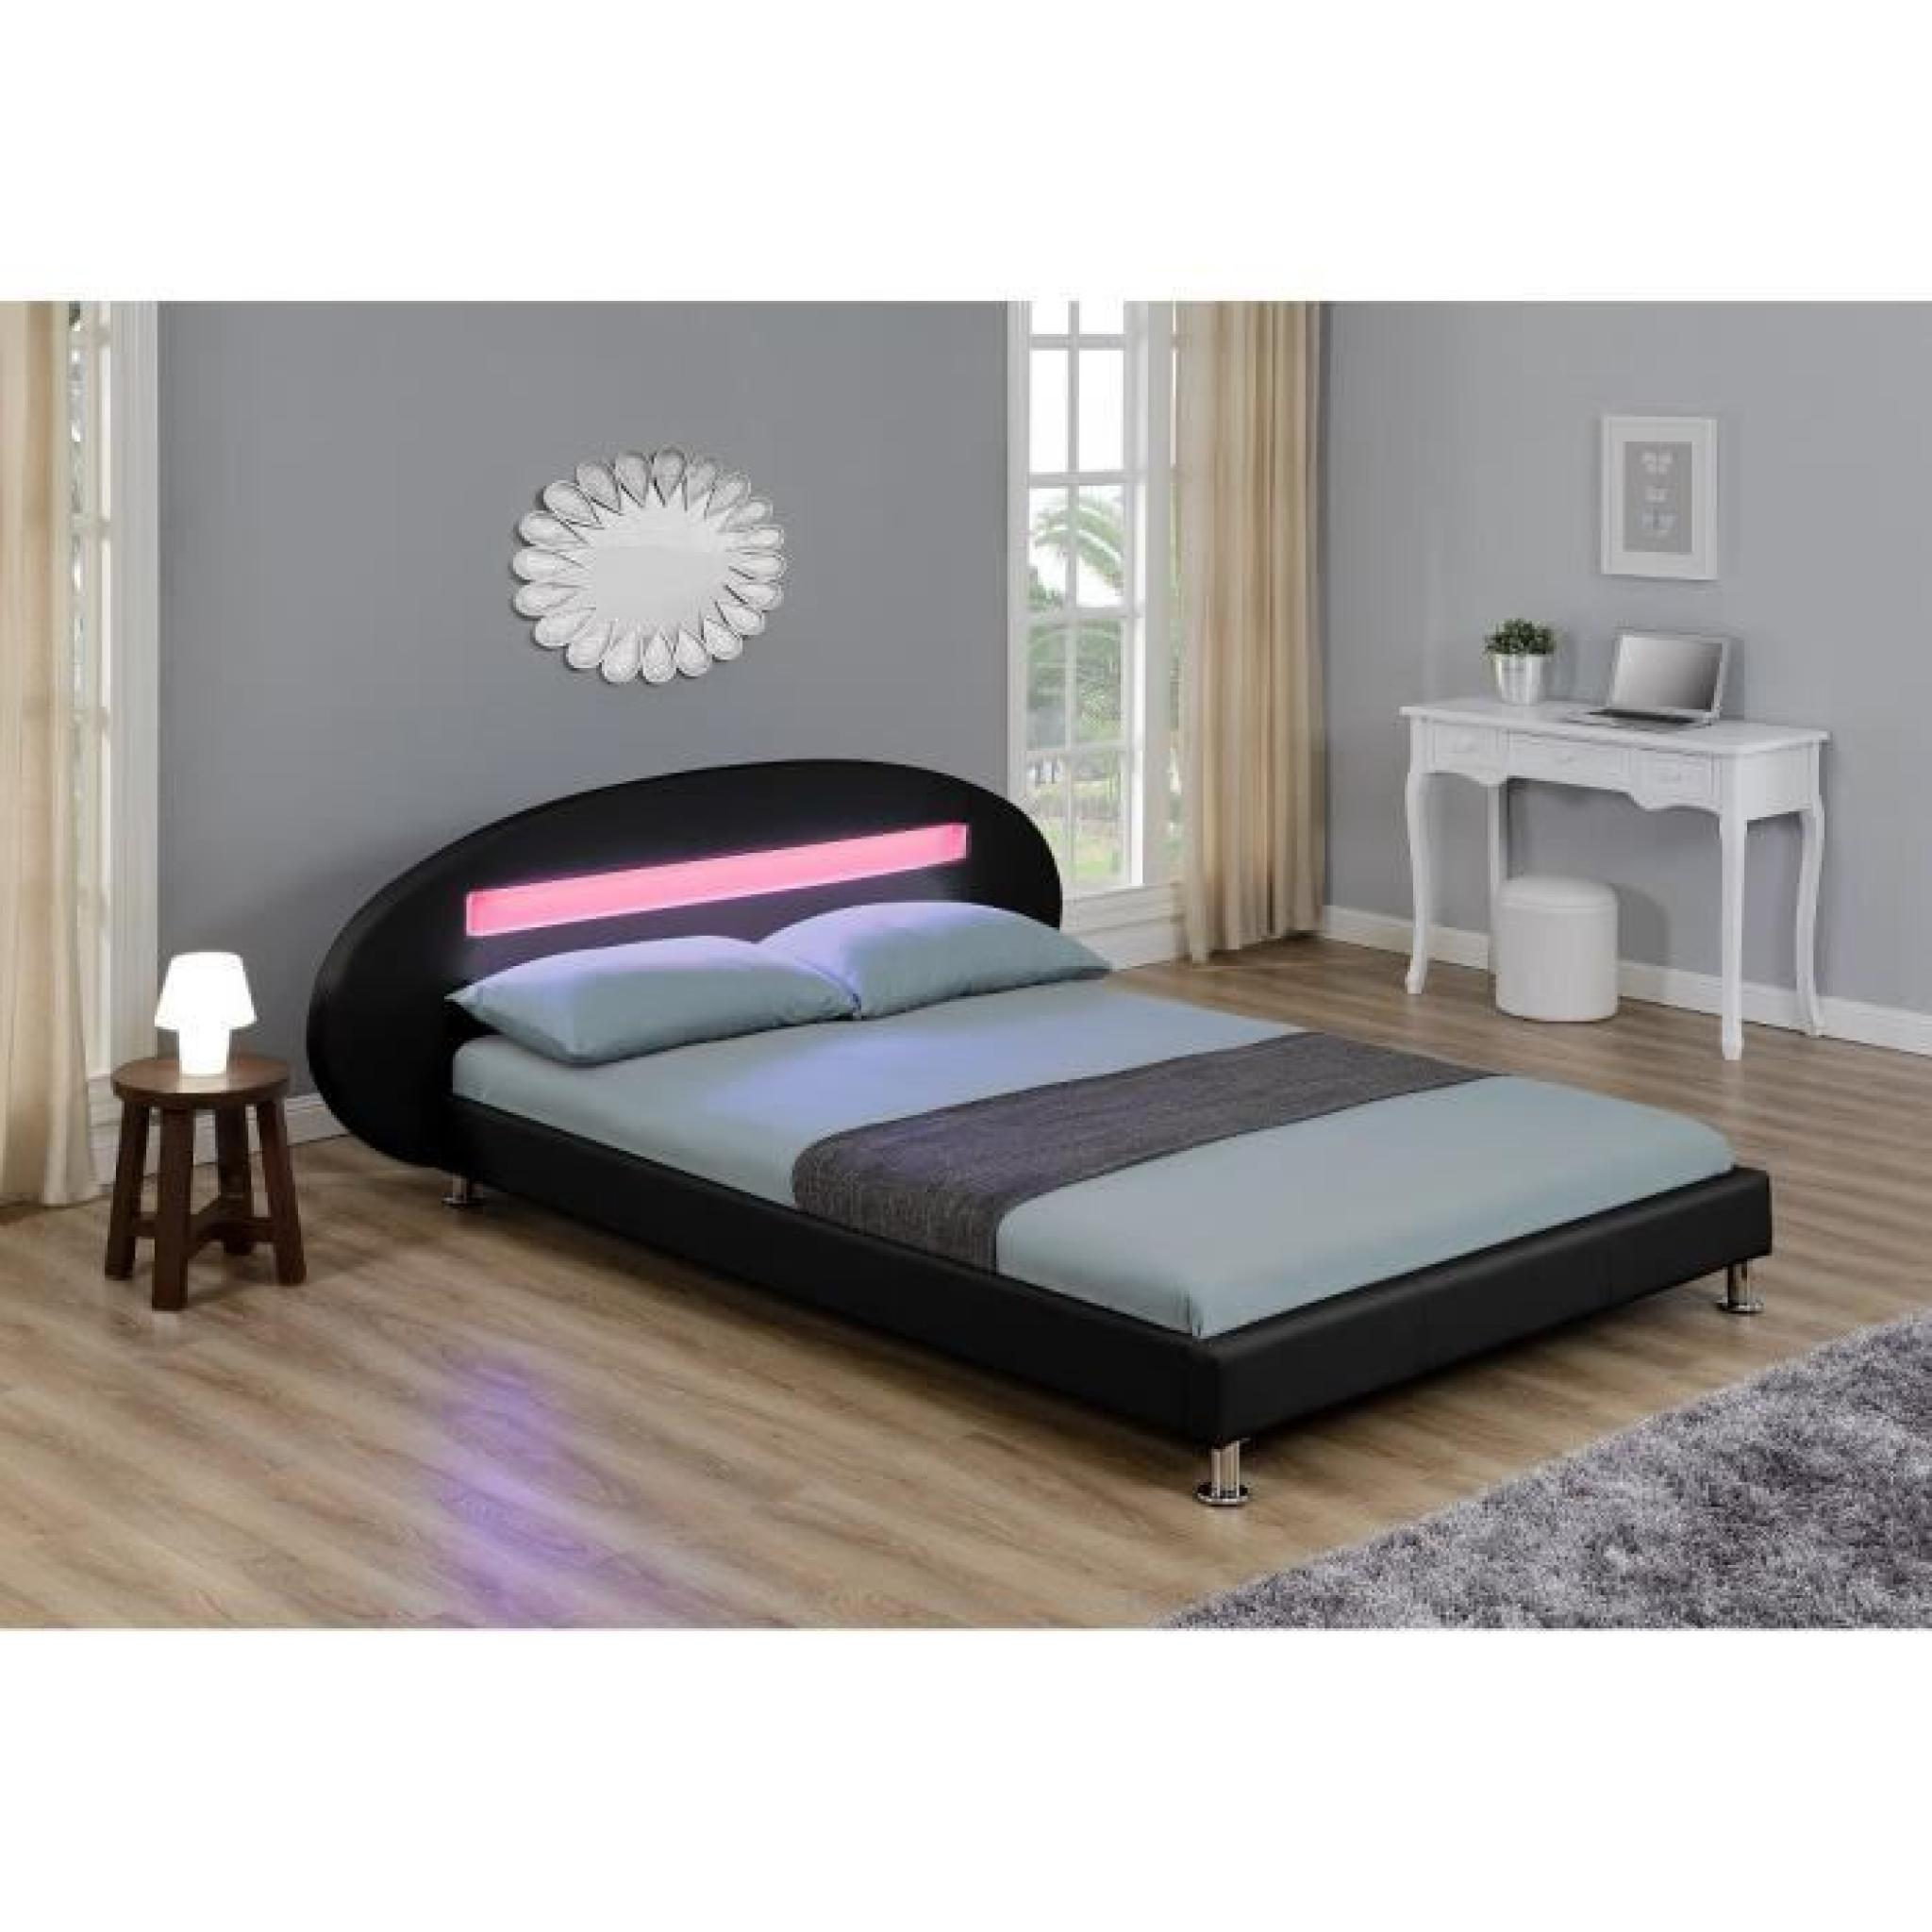 orion lit led adulte 140 x 190 cm noir achat vente lit